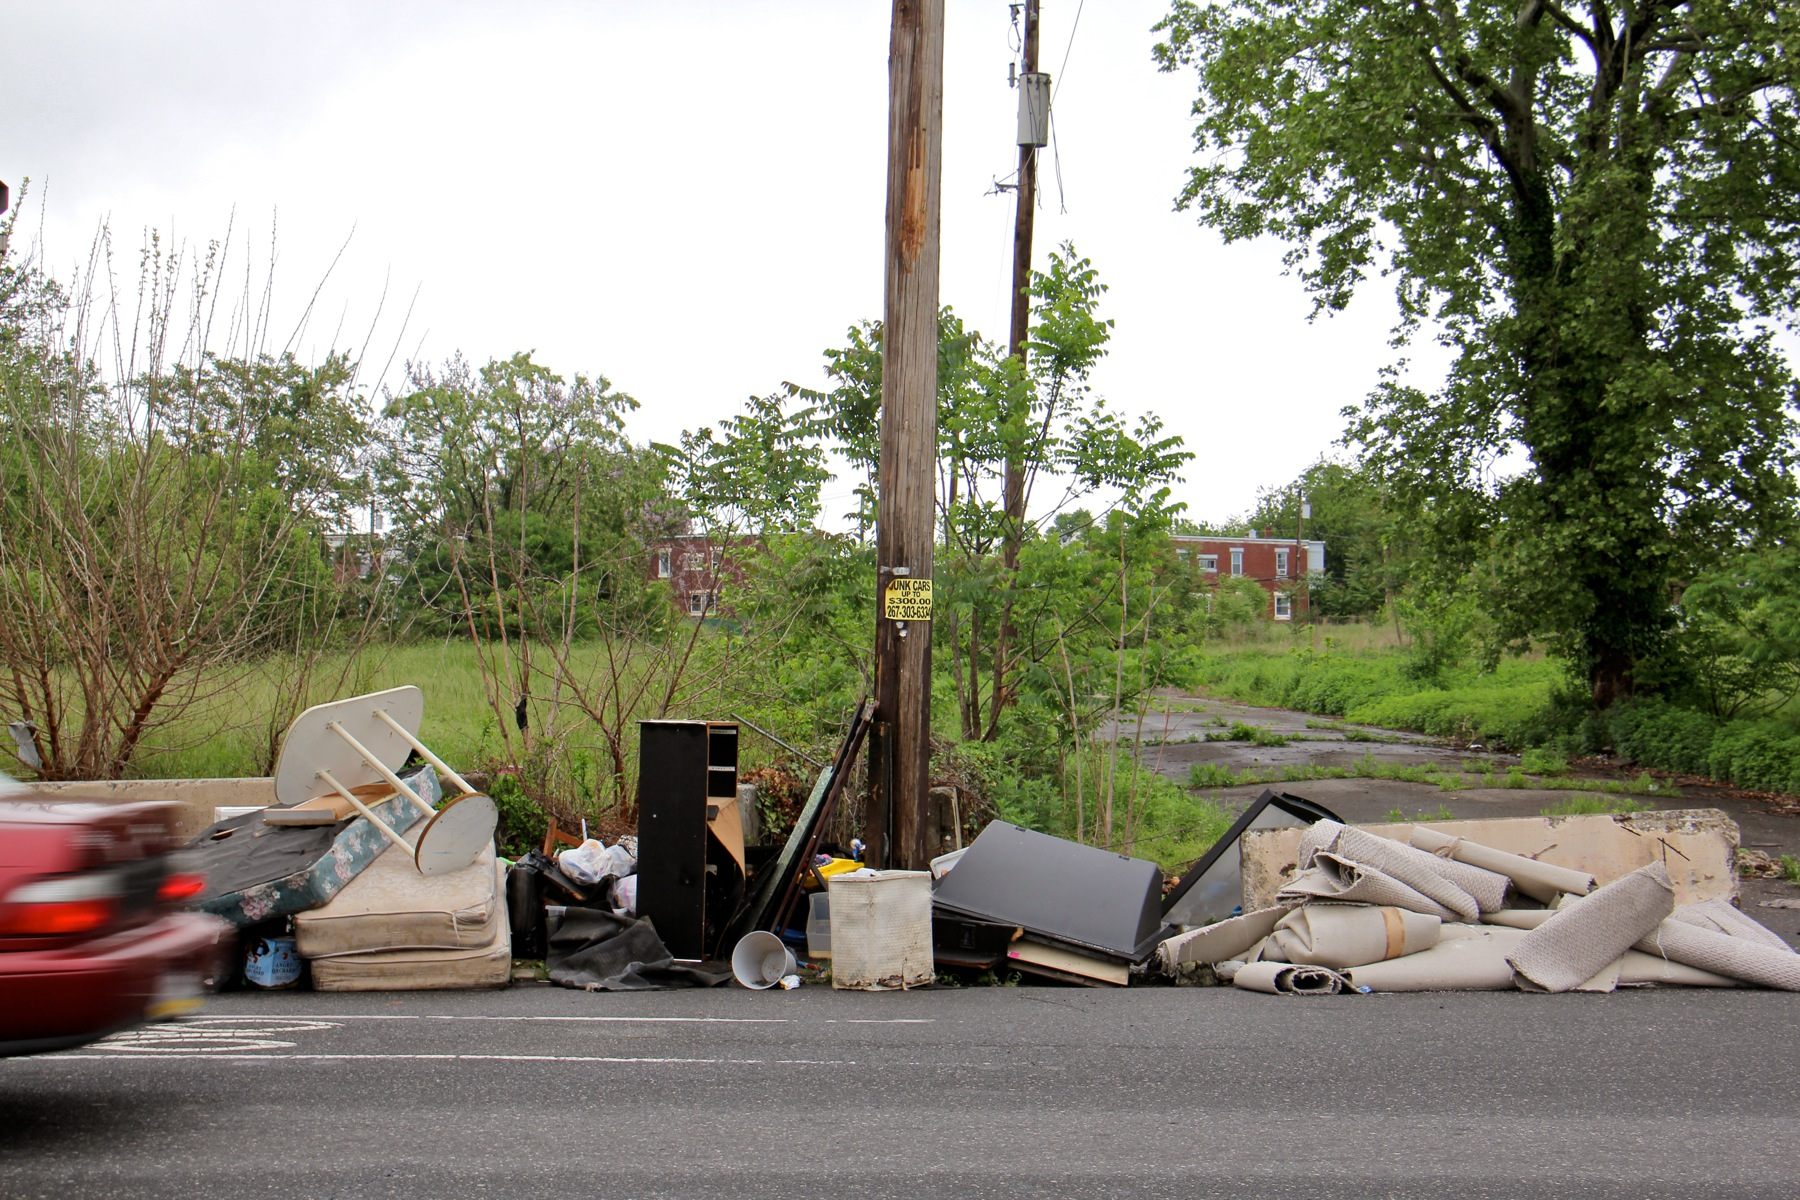 A virtual household's worth of trash illegally dumped at the Logan Triangle.